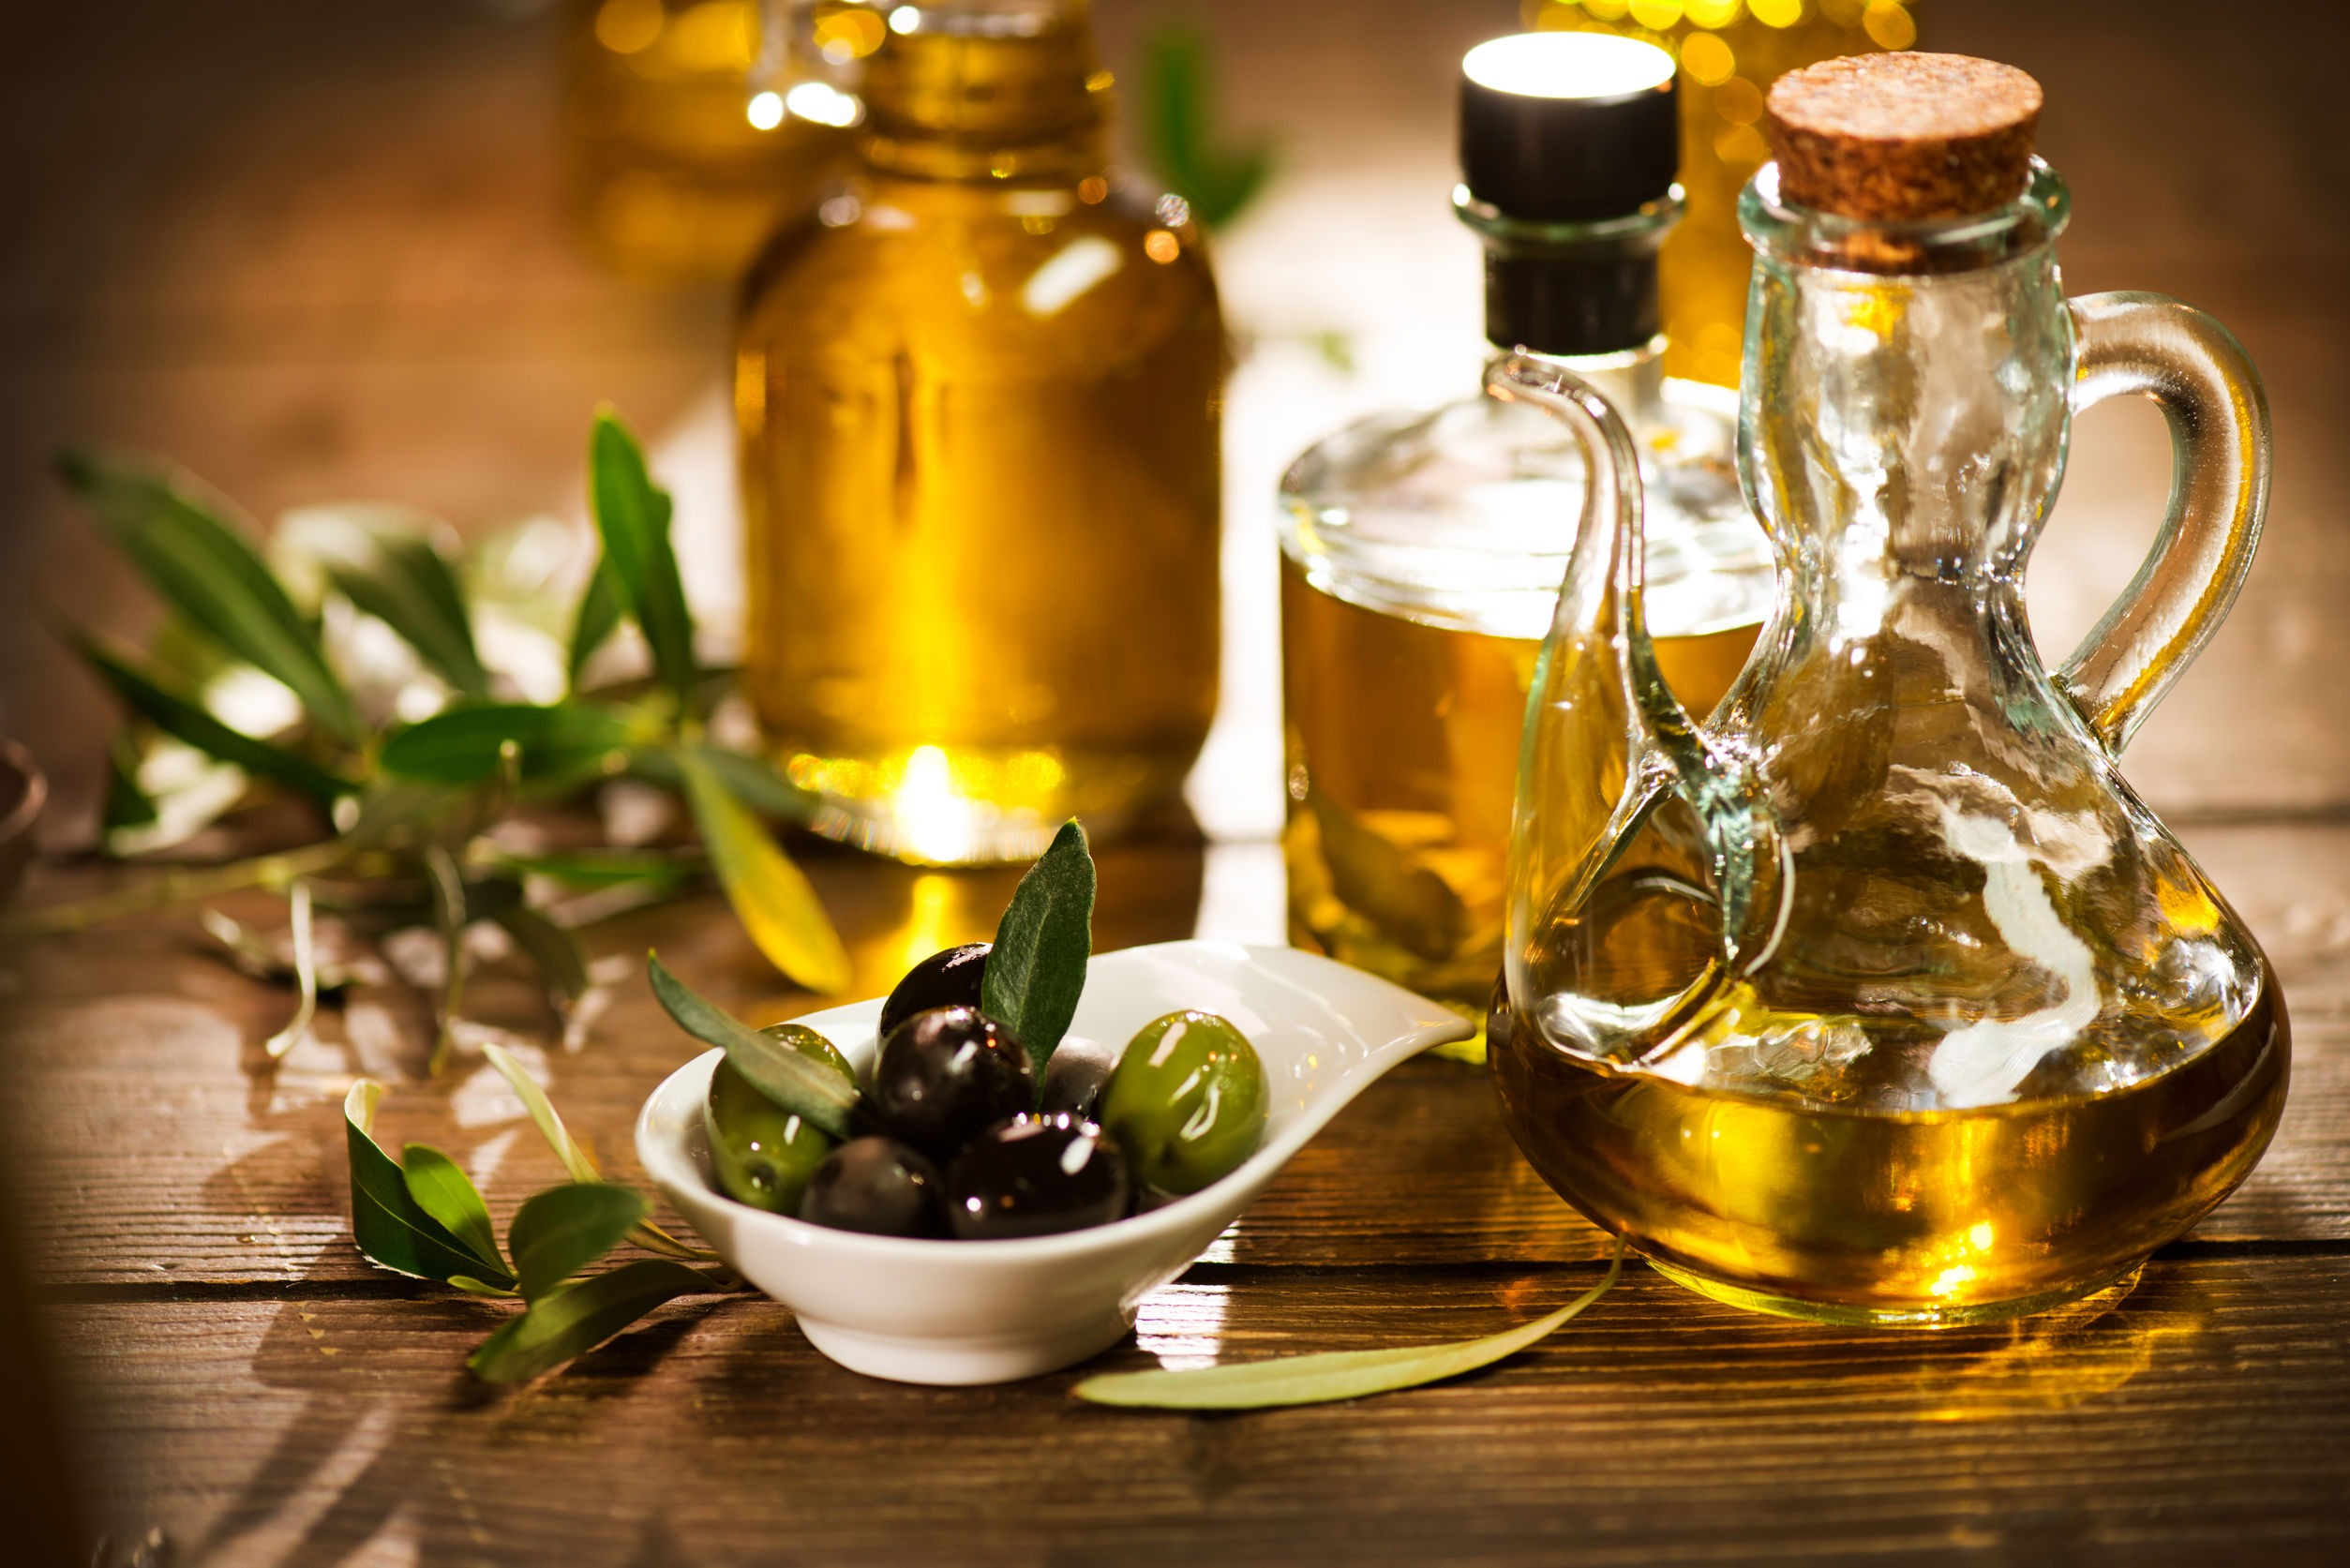 Mediterranean diet is good for the gut microbiome and celiac disease- image is of olive oil bottles